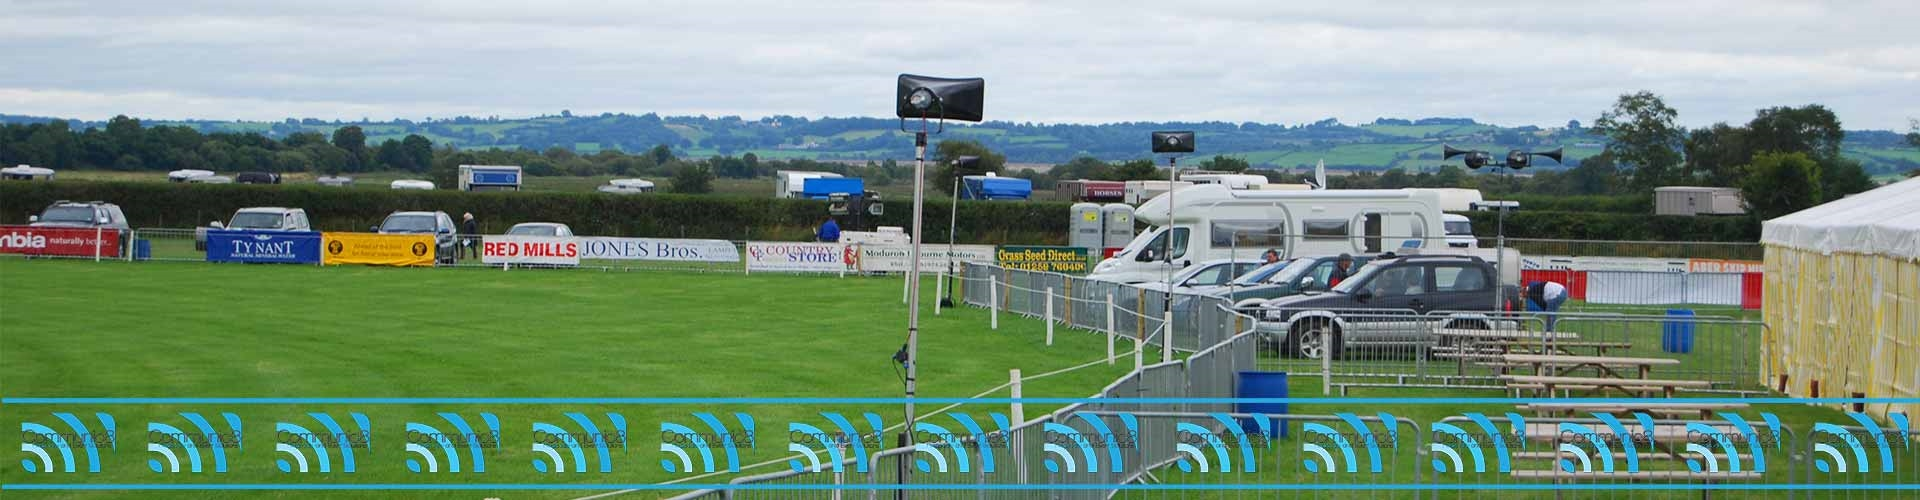 Speaker Equipment Hire - Outdoor Loudspeaker Hire South Wales